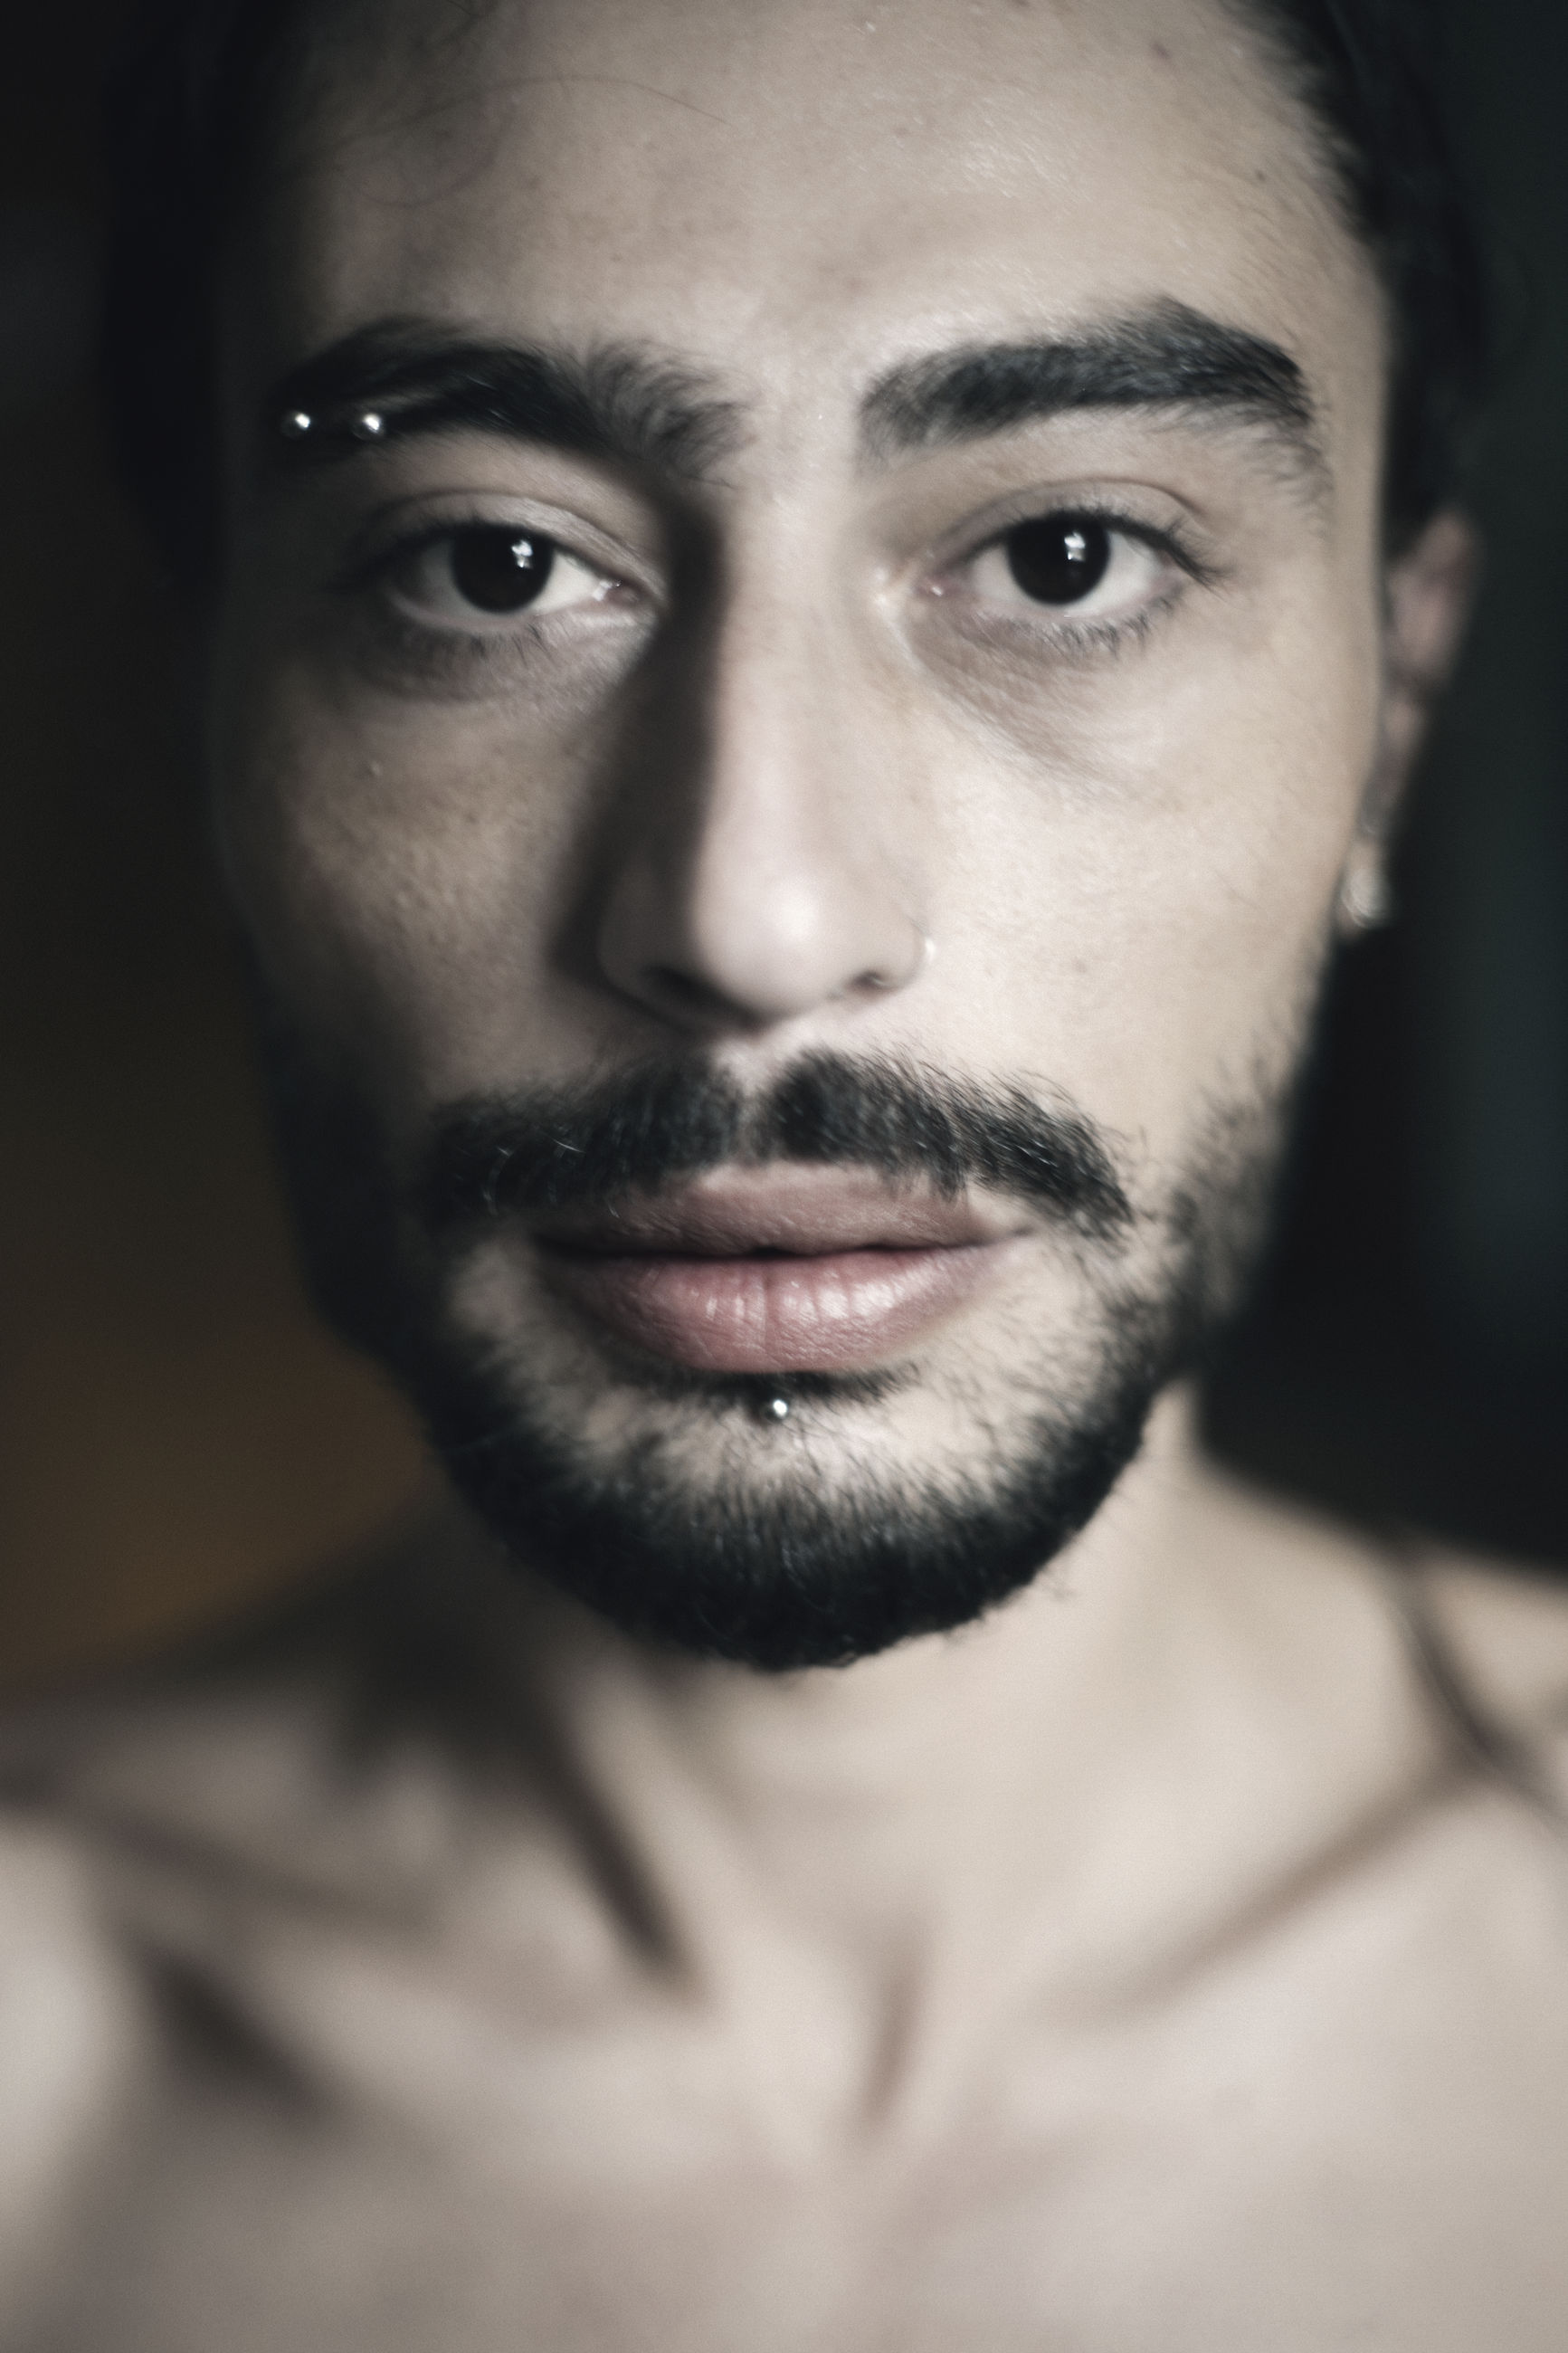 portrait, headshot, looking at camera, front view, one person, young adult, real people, indoors, close-up, young men, beard, lifestyles, facial hair, mid adult, focus on foreground, men, shirtless, mid adult men, human face, contemplation, black background